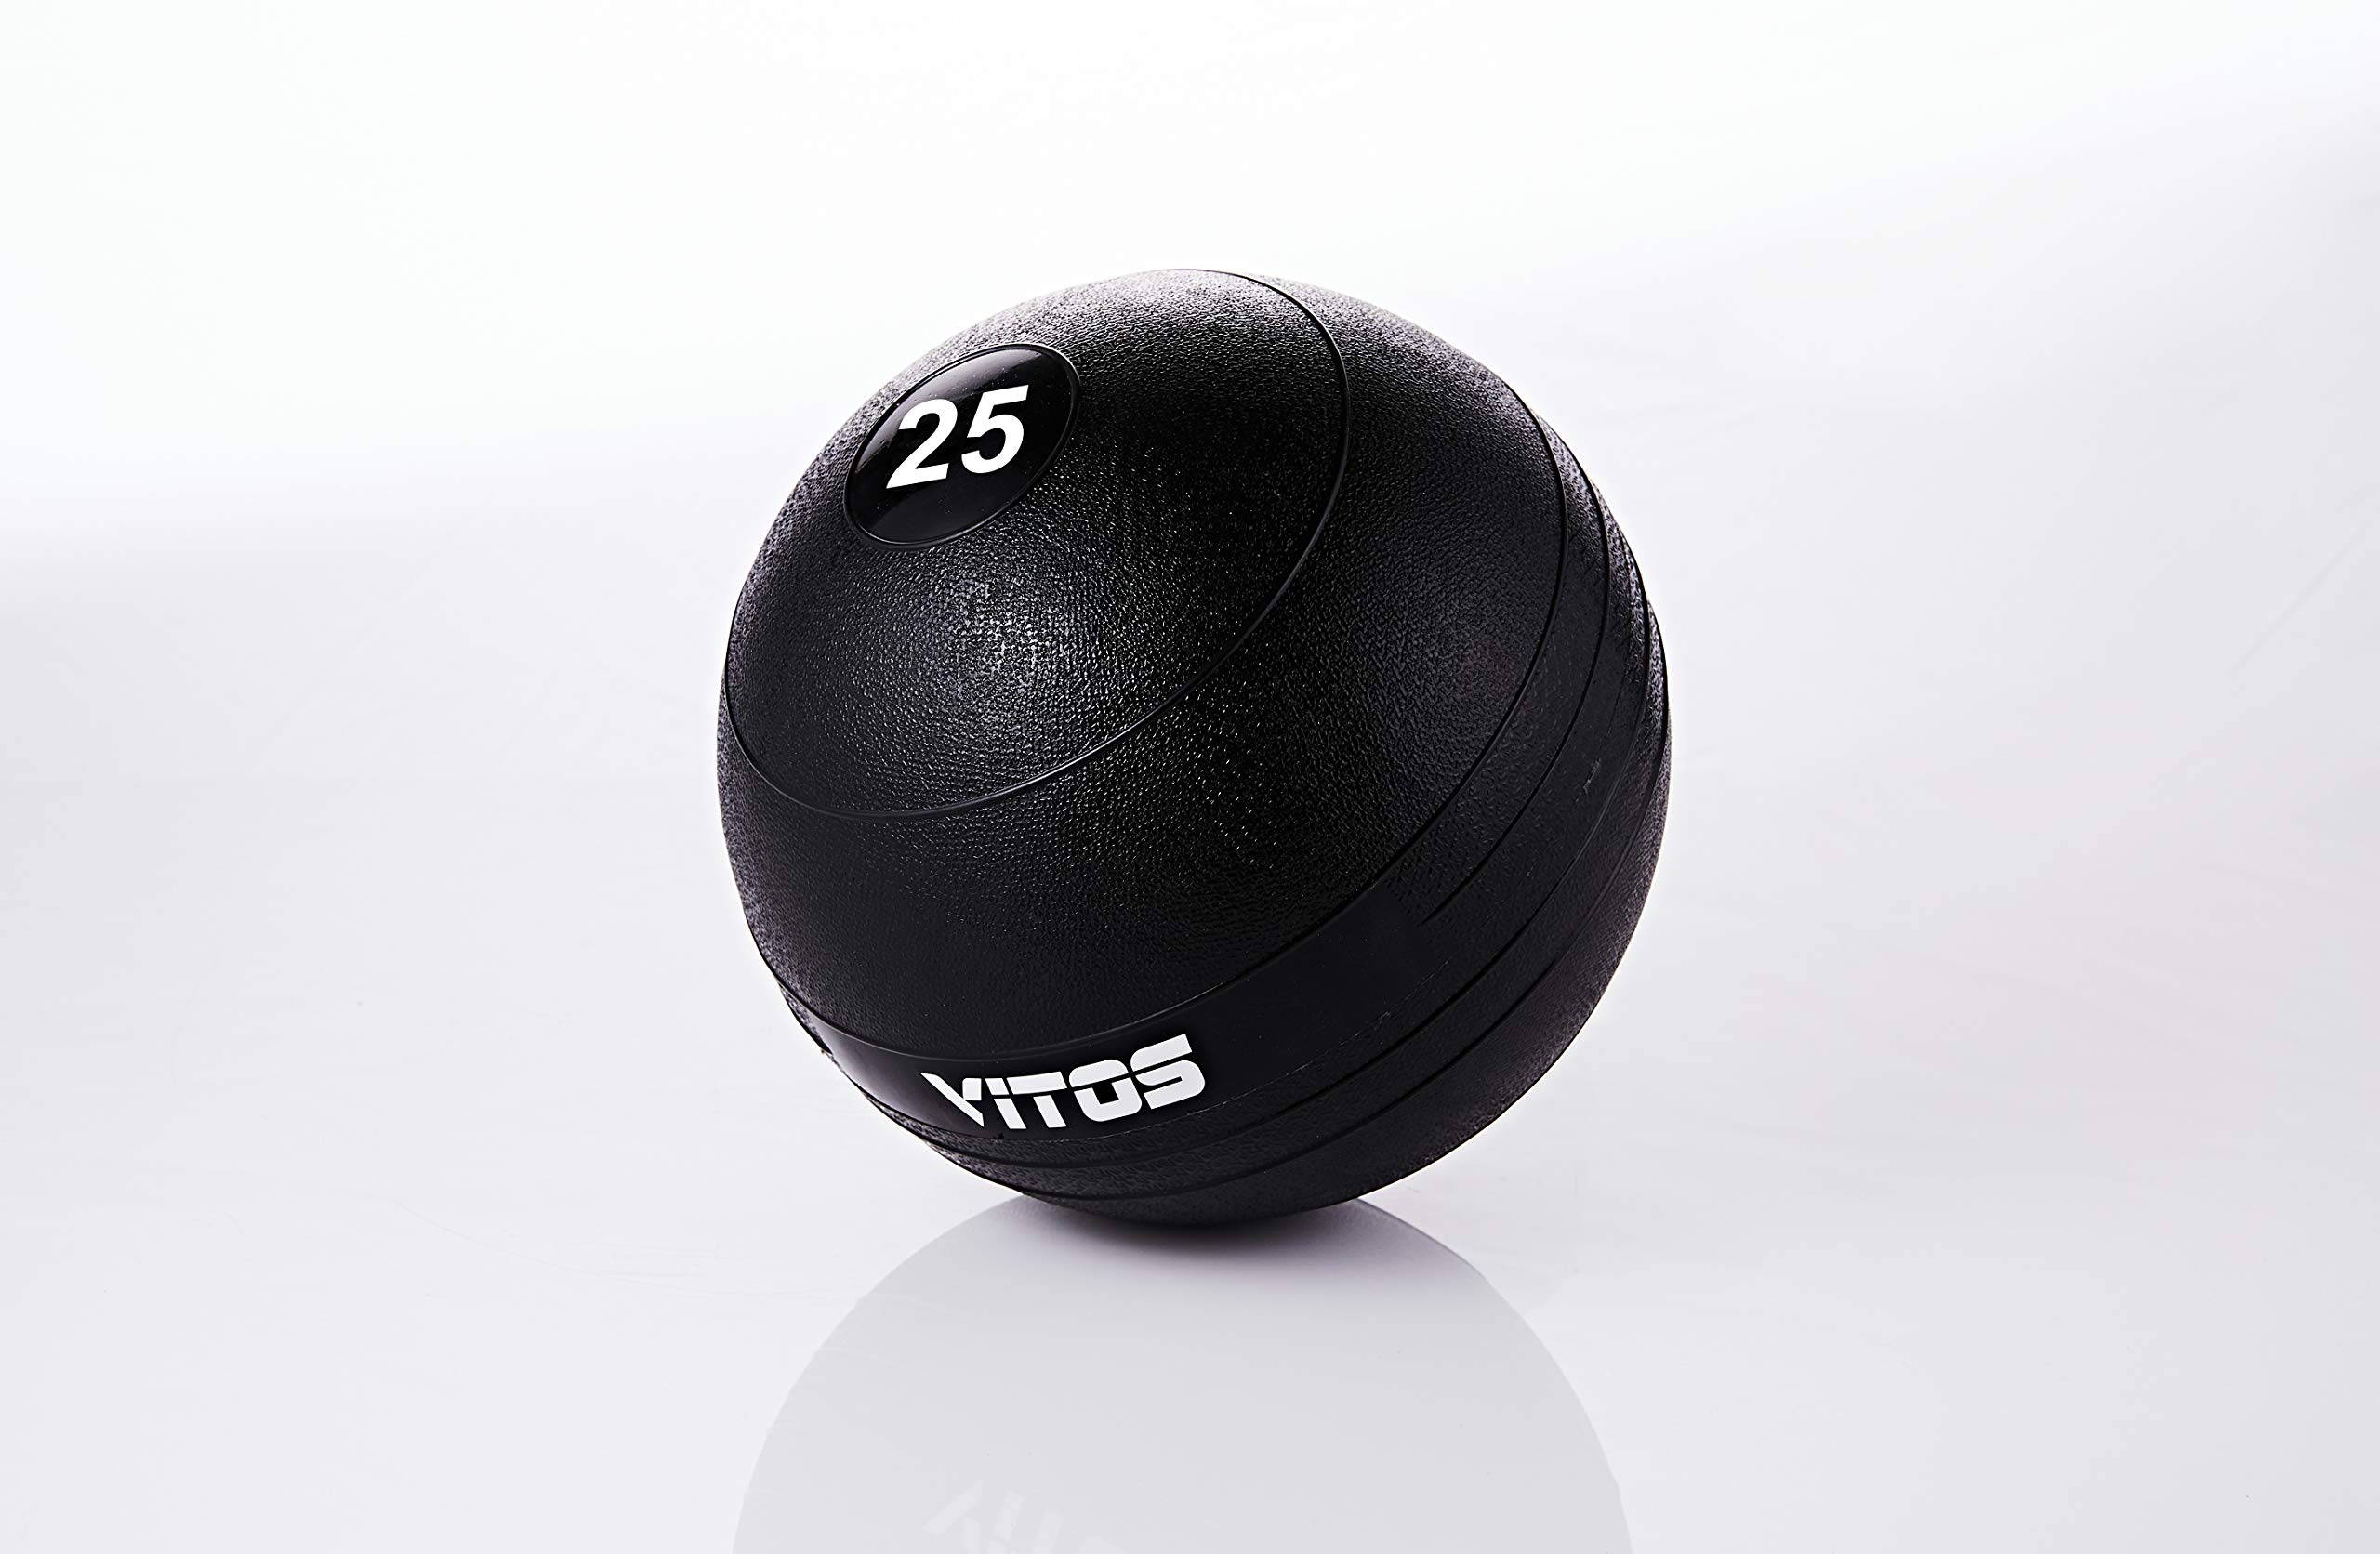 Vitos Fitness Exercise Slam Medicine Ball 10 to 70 Pounds | Durable  Weighted Gym Accessory Strength Conditioning Cross Training Core Squats  Lunges